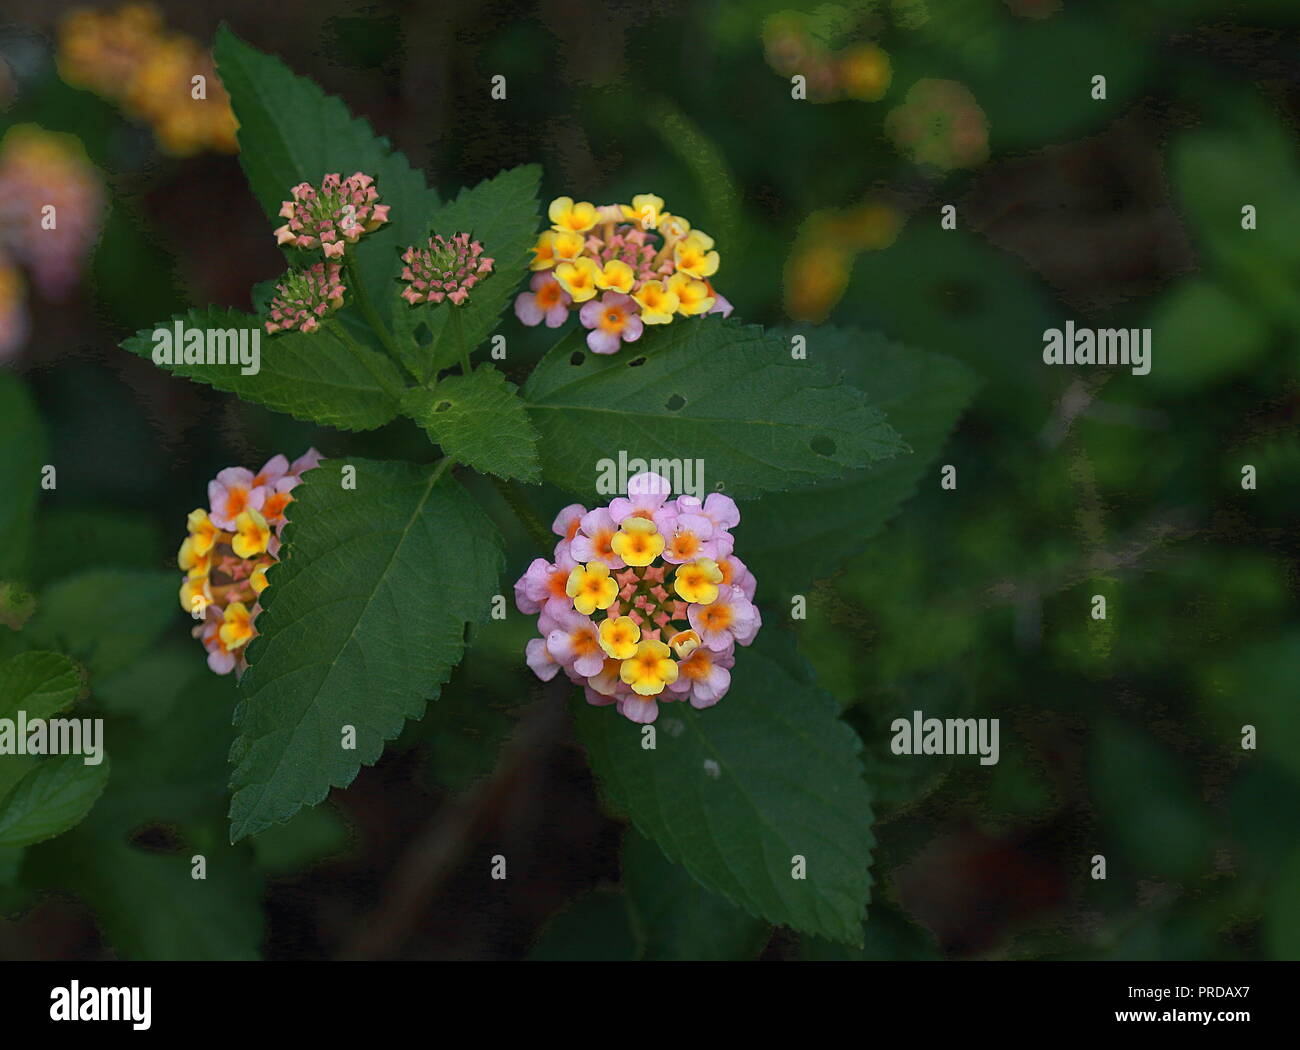 Perennial lantana stock photos perennial lantana stock images alamy lantana camara beautiful small flowers tickberry and green leaves stock image mightylinksfo